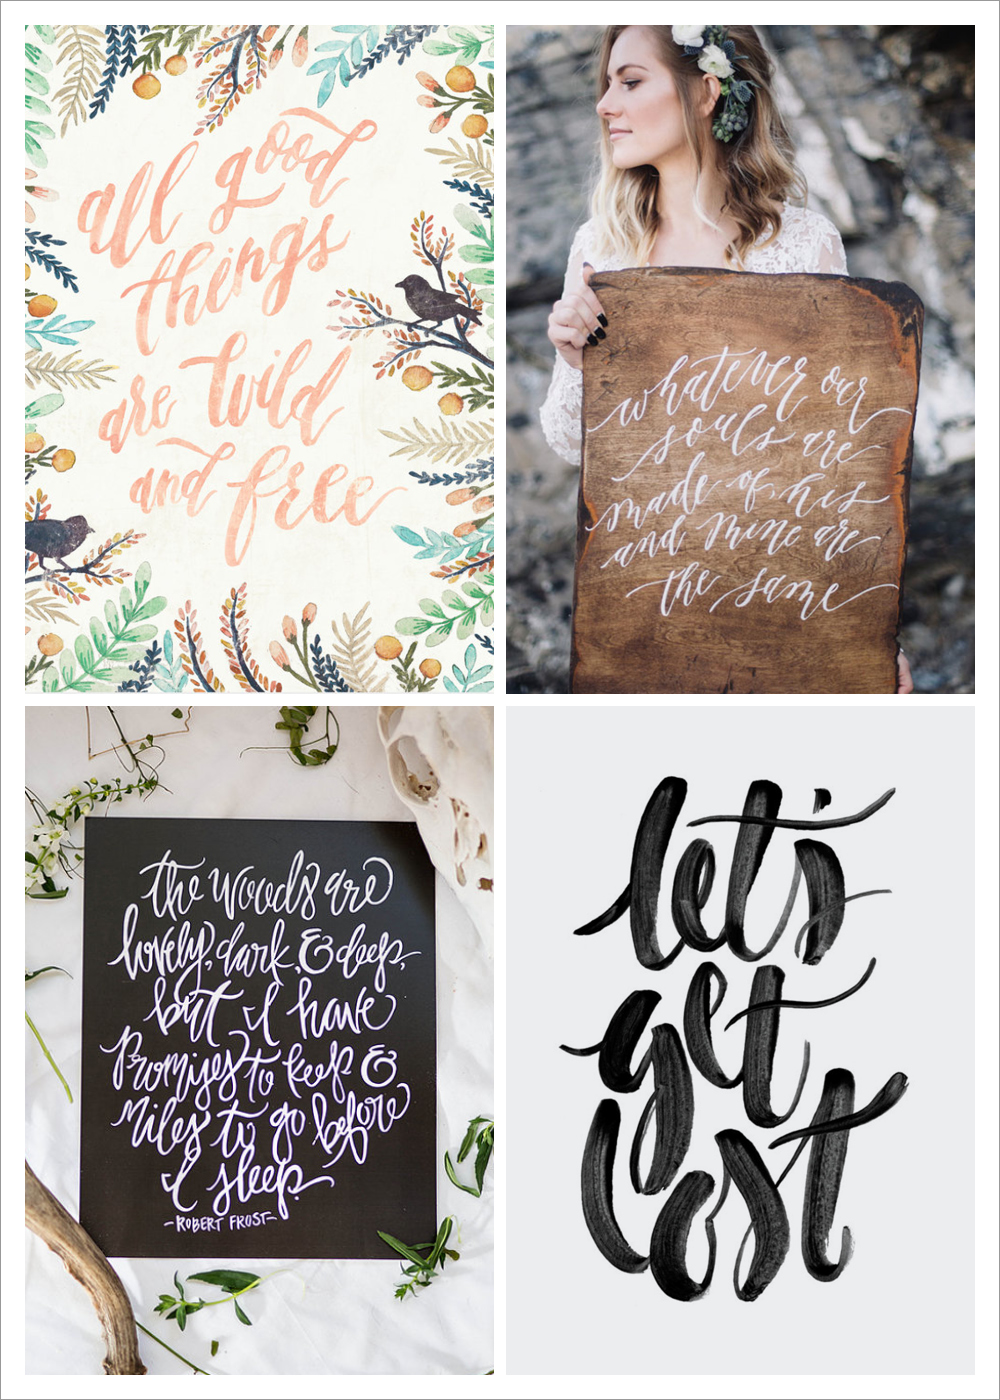 rustic calligraphy inspiration via happy hands project